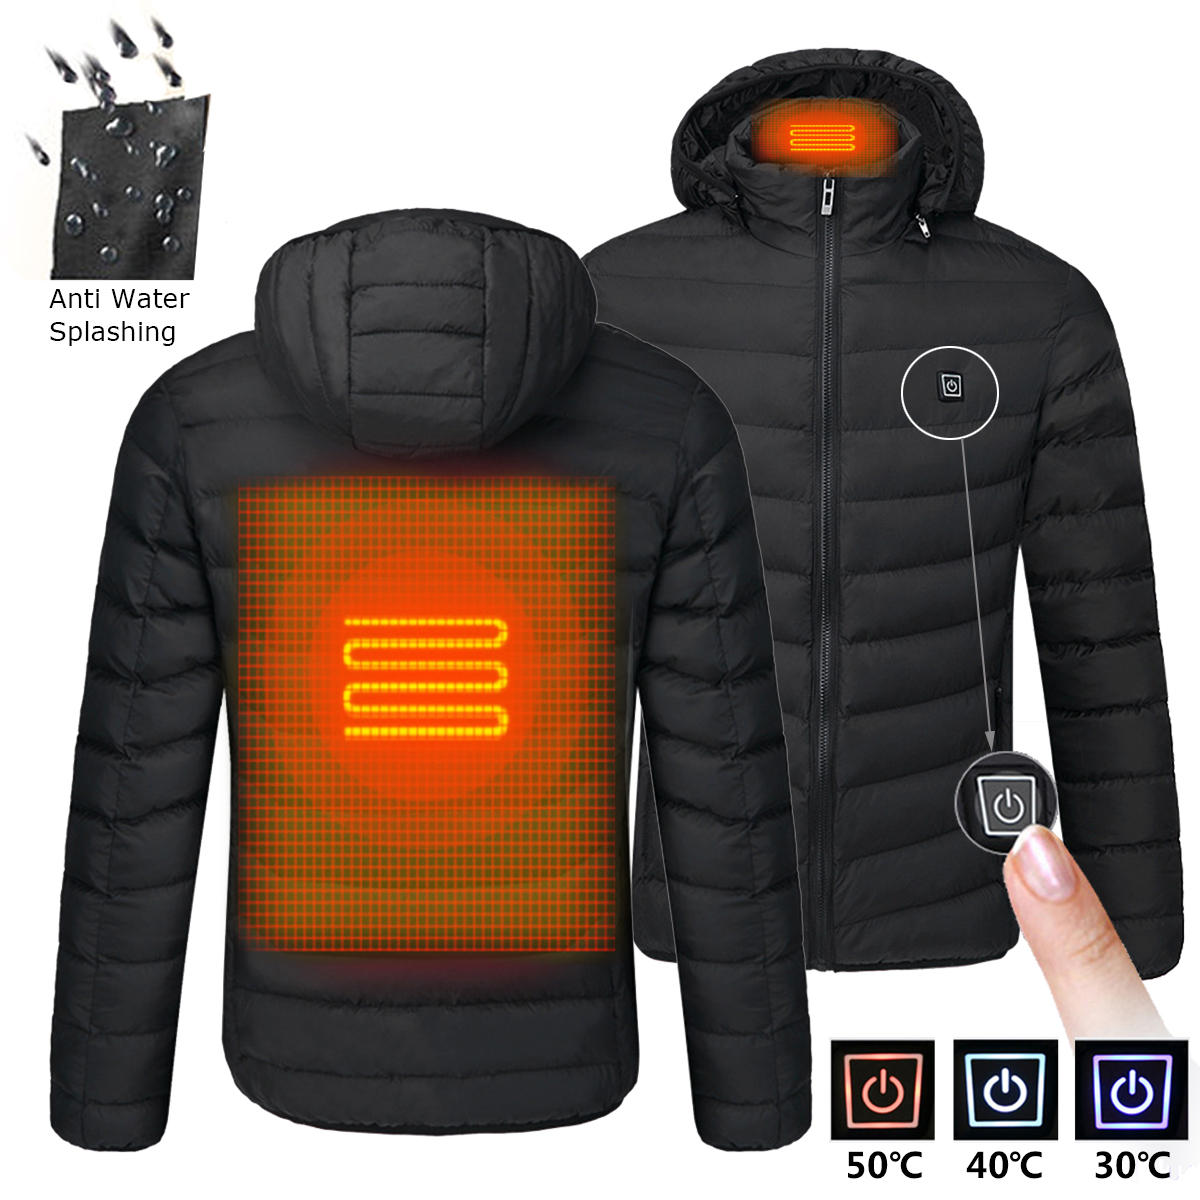 41e189f78 Mens USB Heated Warm Back Cervical Spine Hooded Winter Jacket Motorcycle  Skiing Riding Coat Women